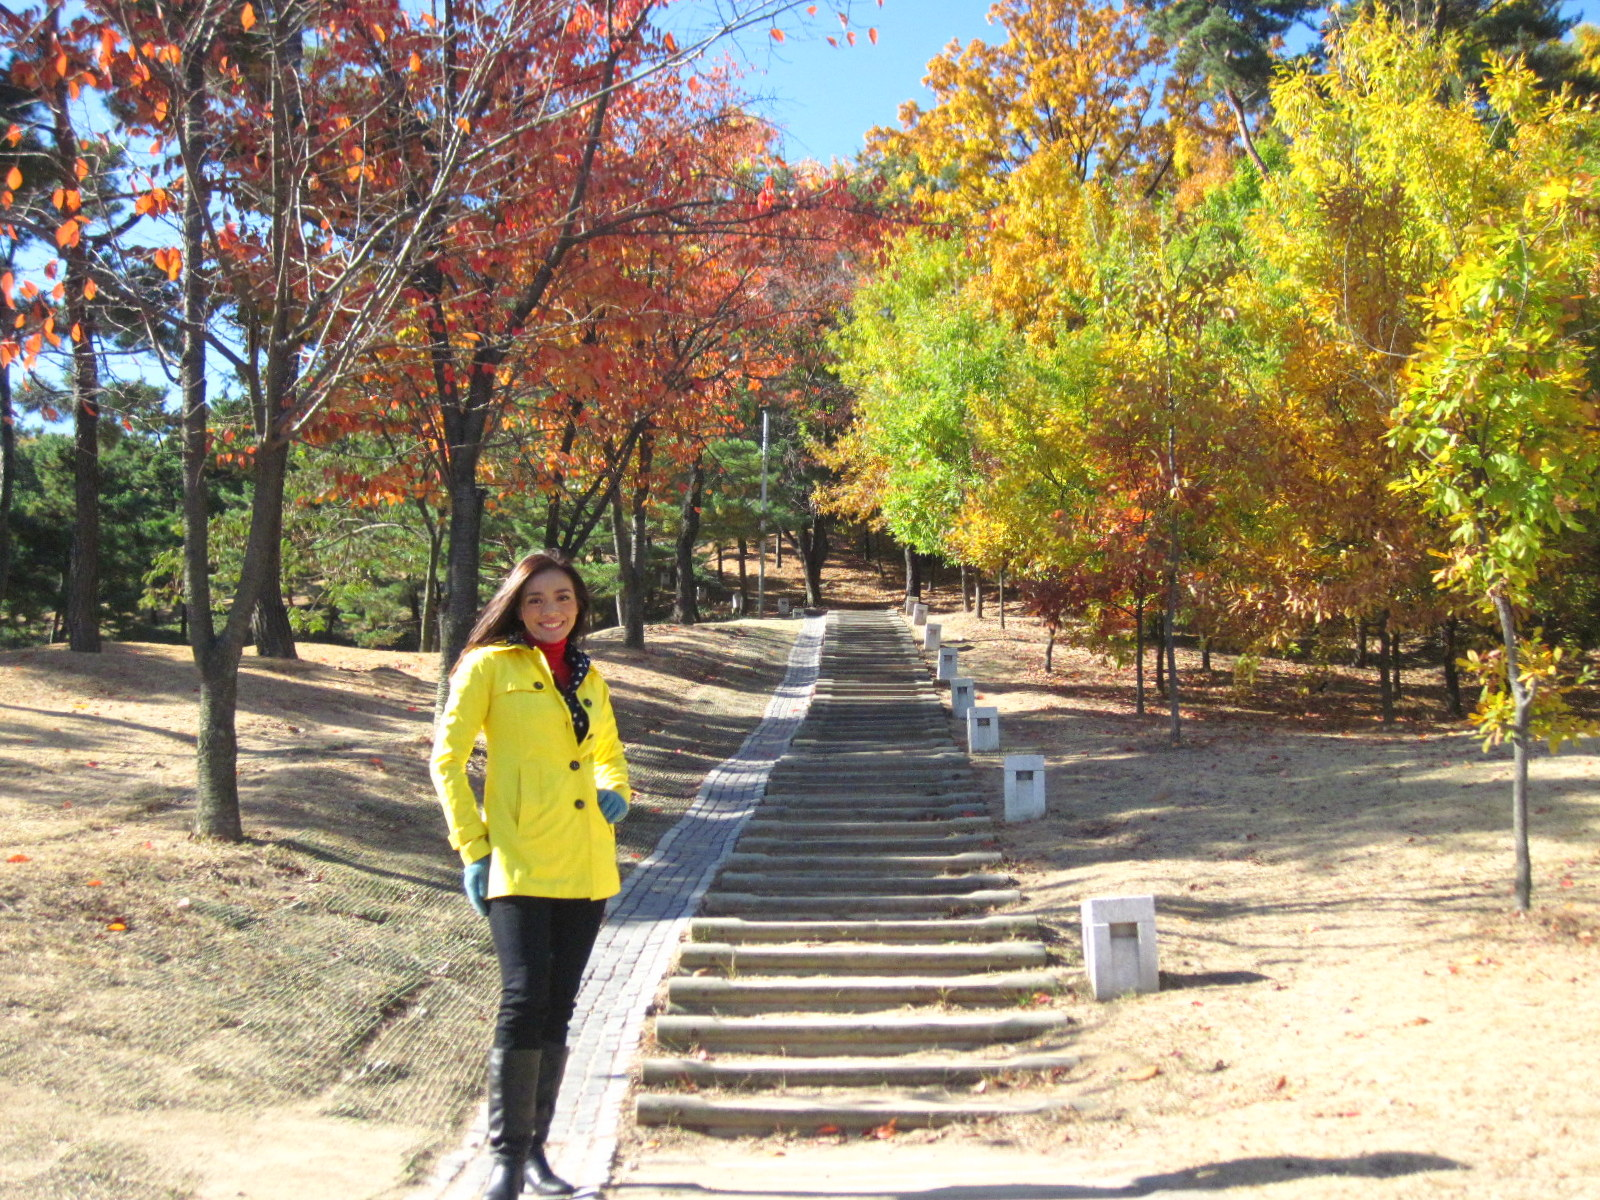 photo essay a trip around gyeonggi do south korea public autumn in south korea the wish ko lang team was fortunate enough to south korea while in autumn the beauty of this country during the fall season